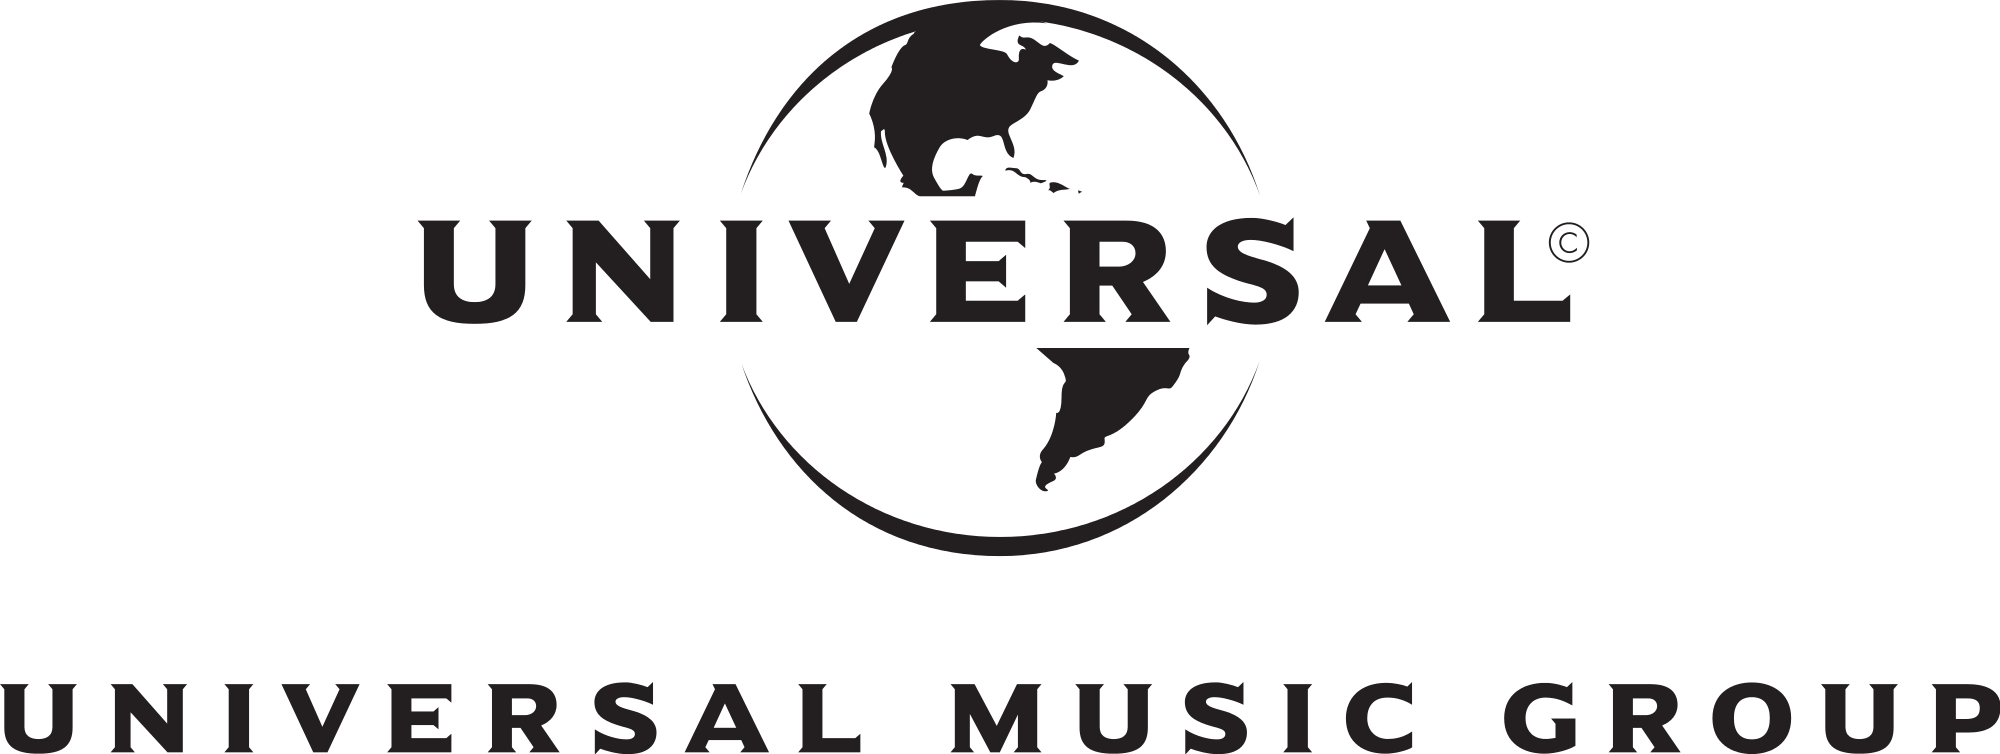 Universal Music Group, the world's leading music company | Home Page